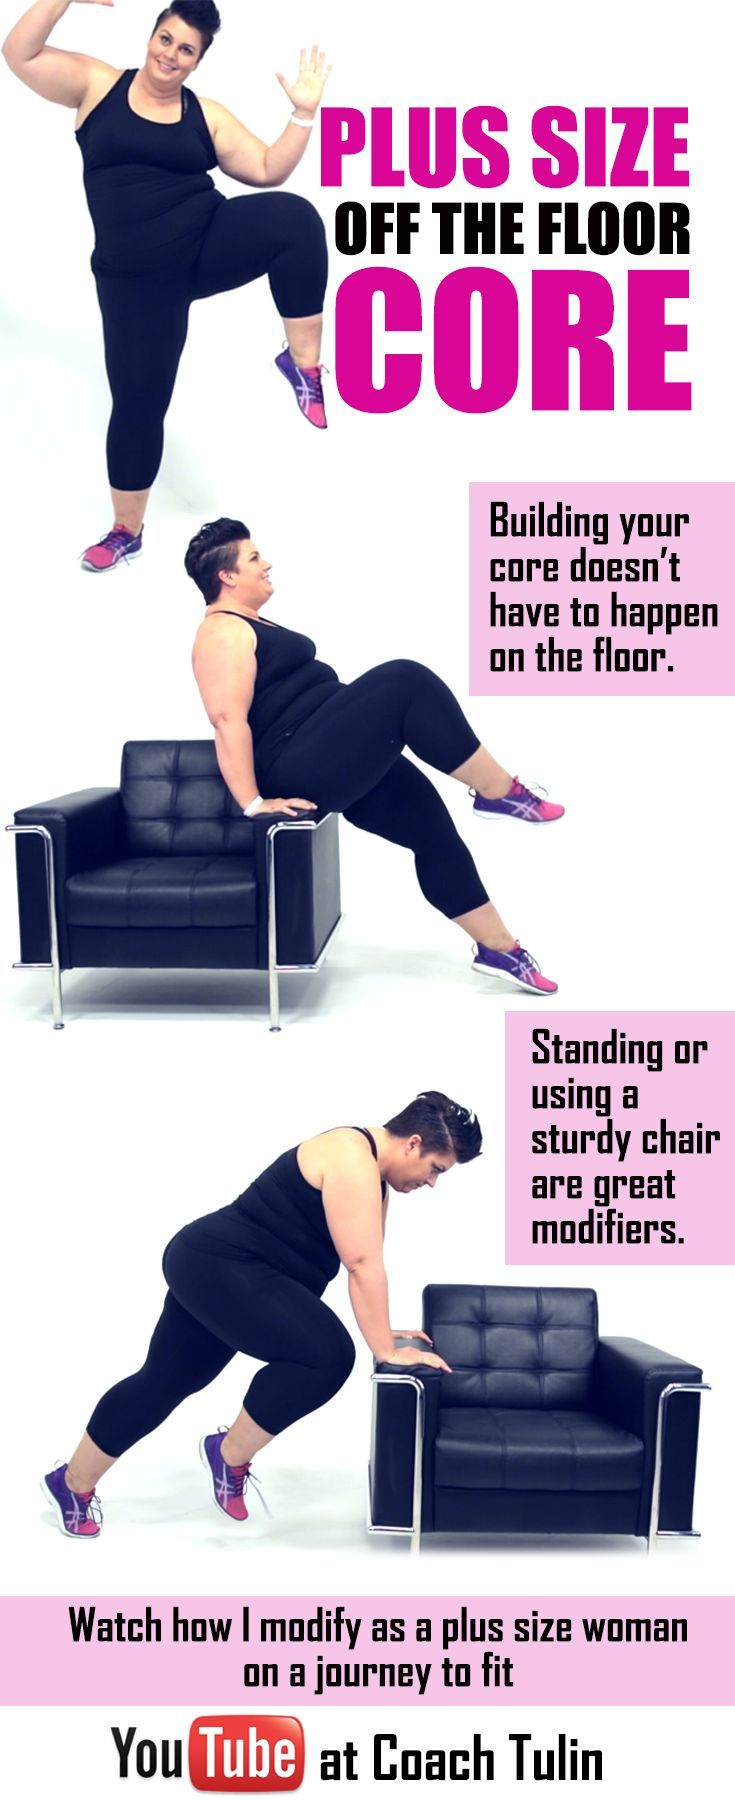 I like this Plus Size core exercises that does not require getting up and down off of the fl...